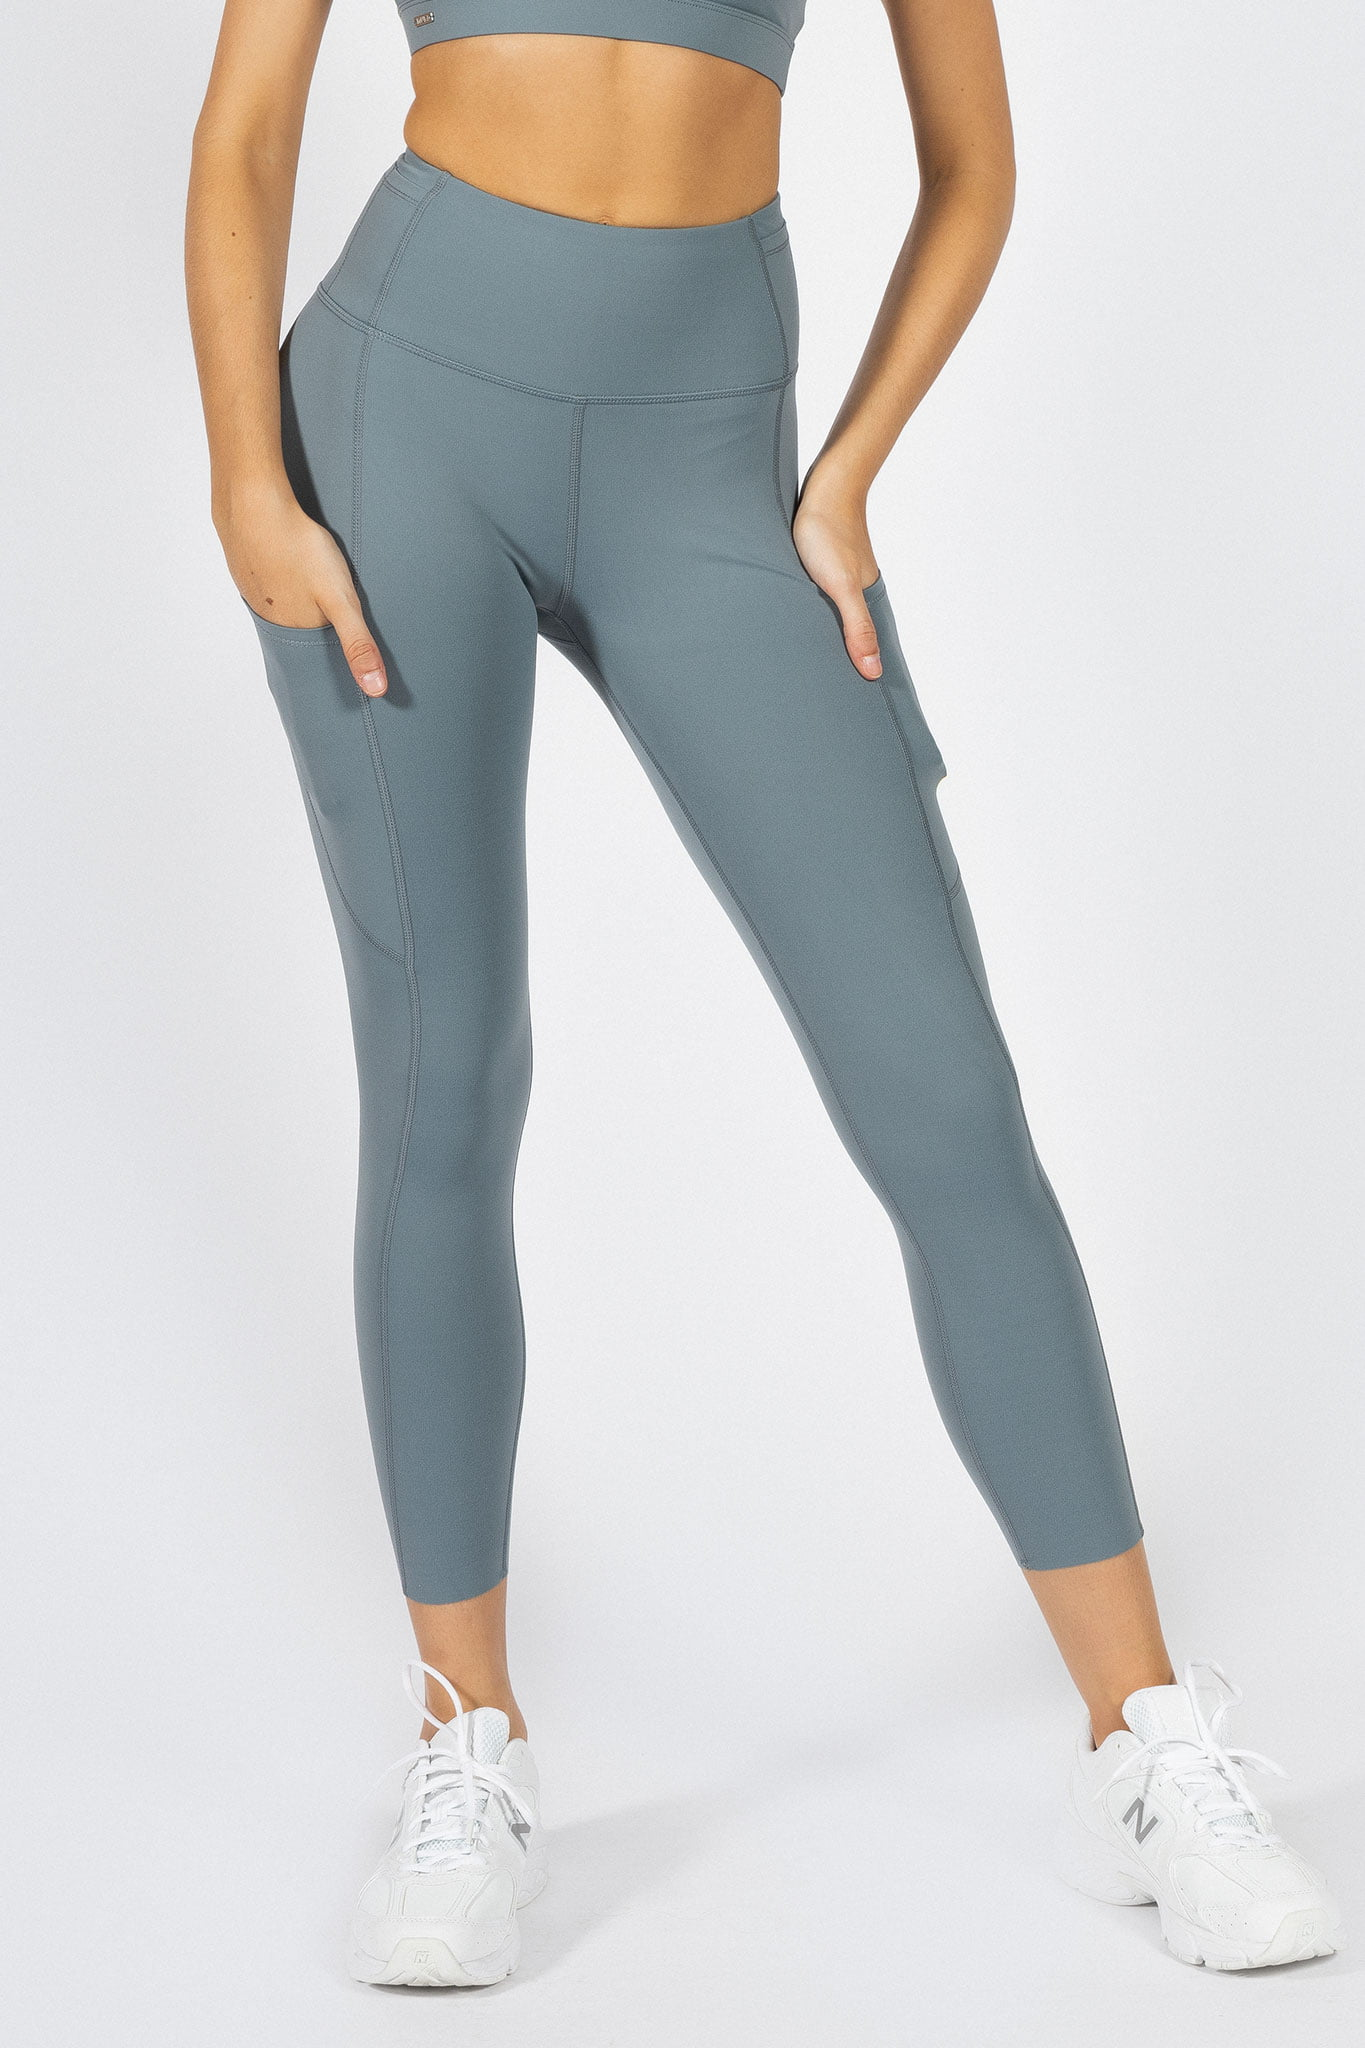 soft high-waisted yoga pant in light blue colour